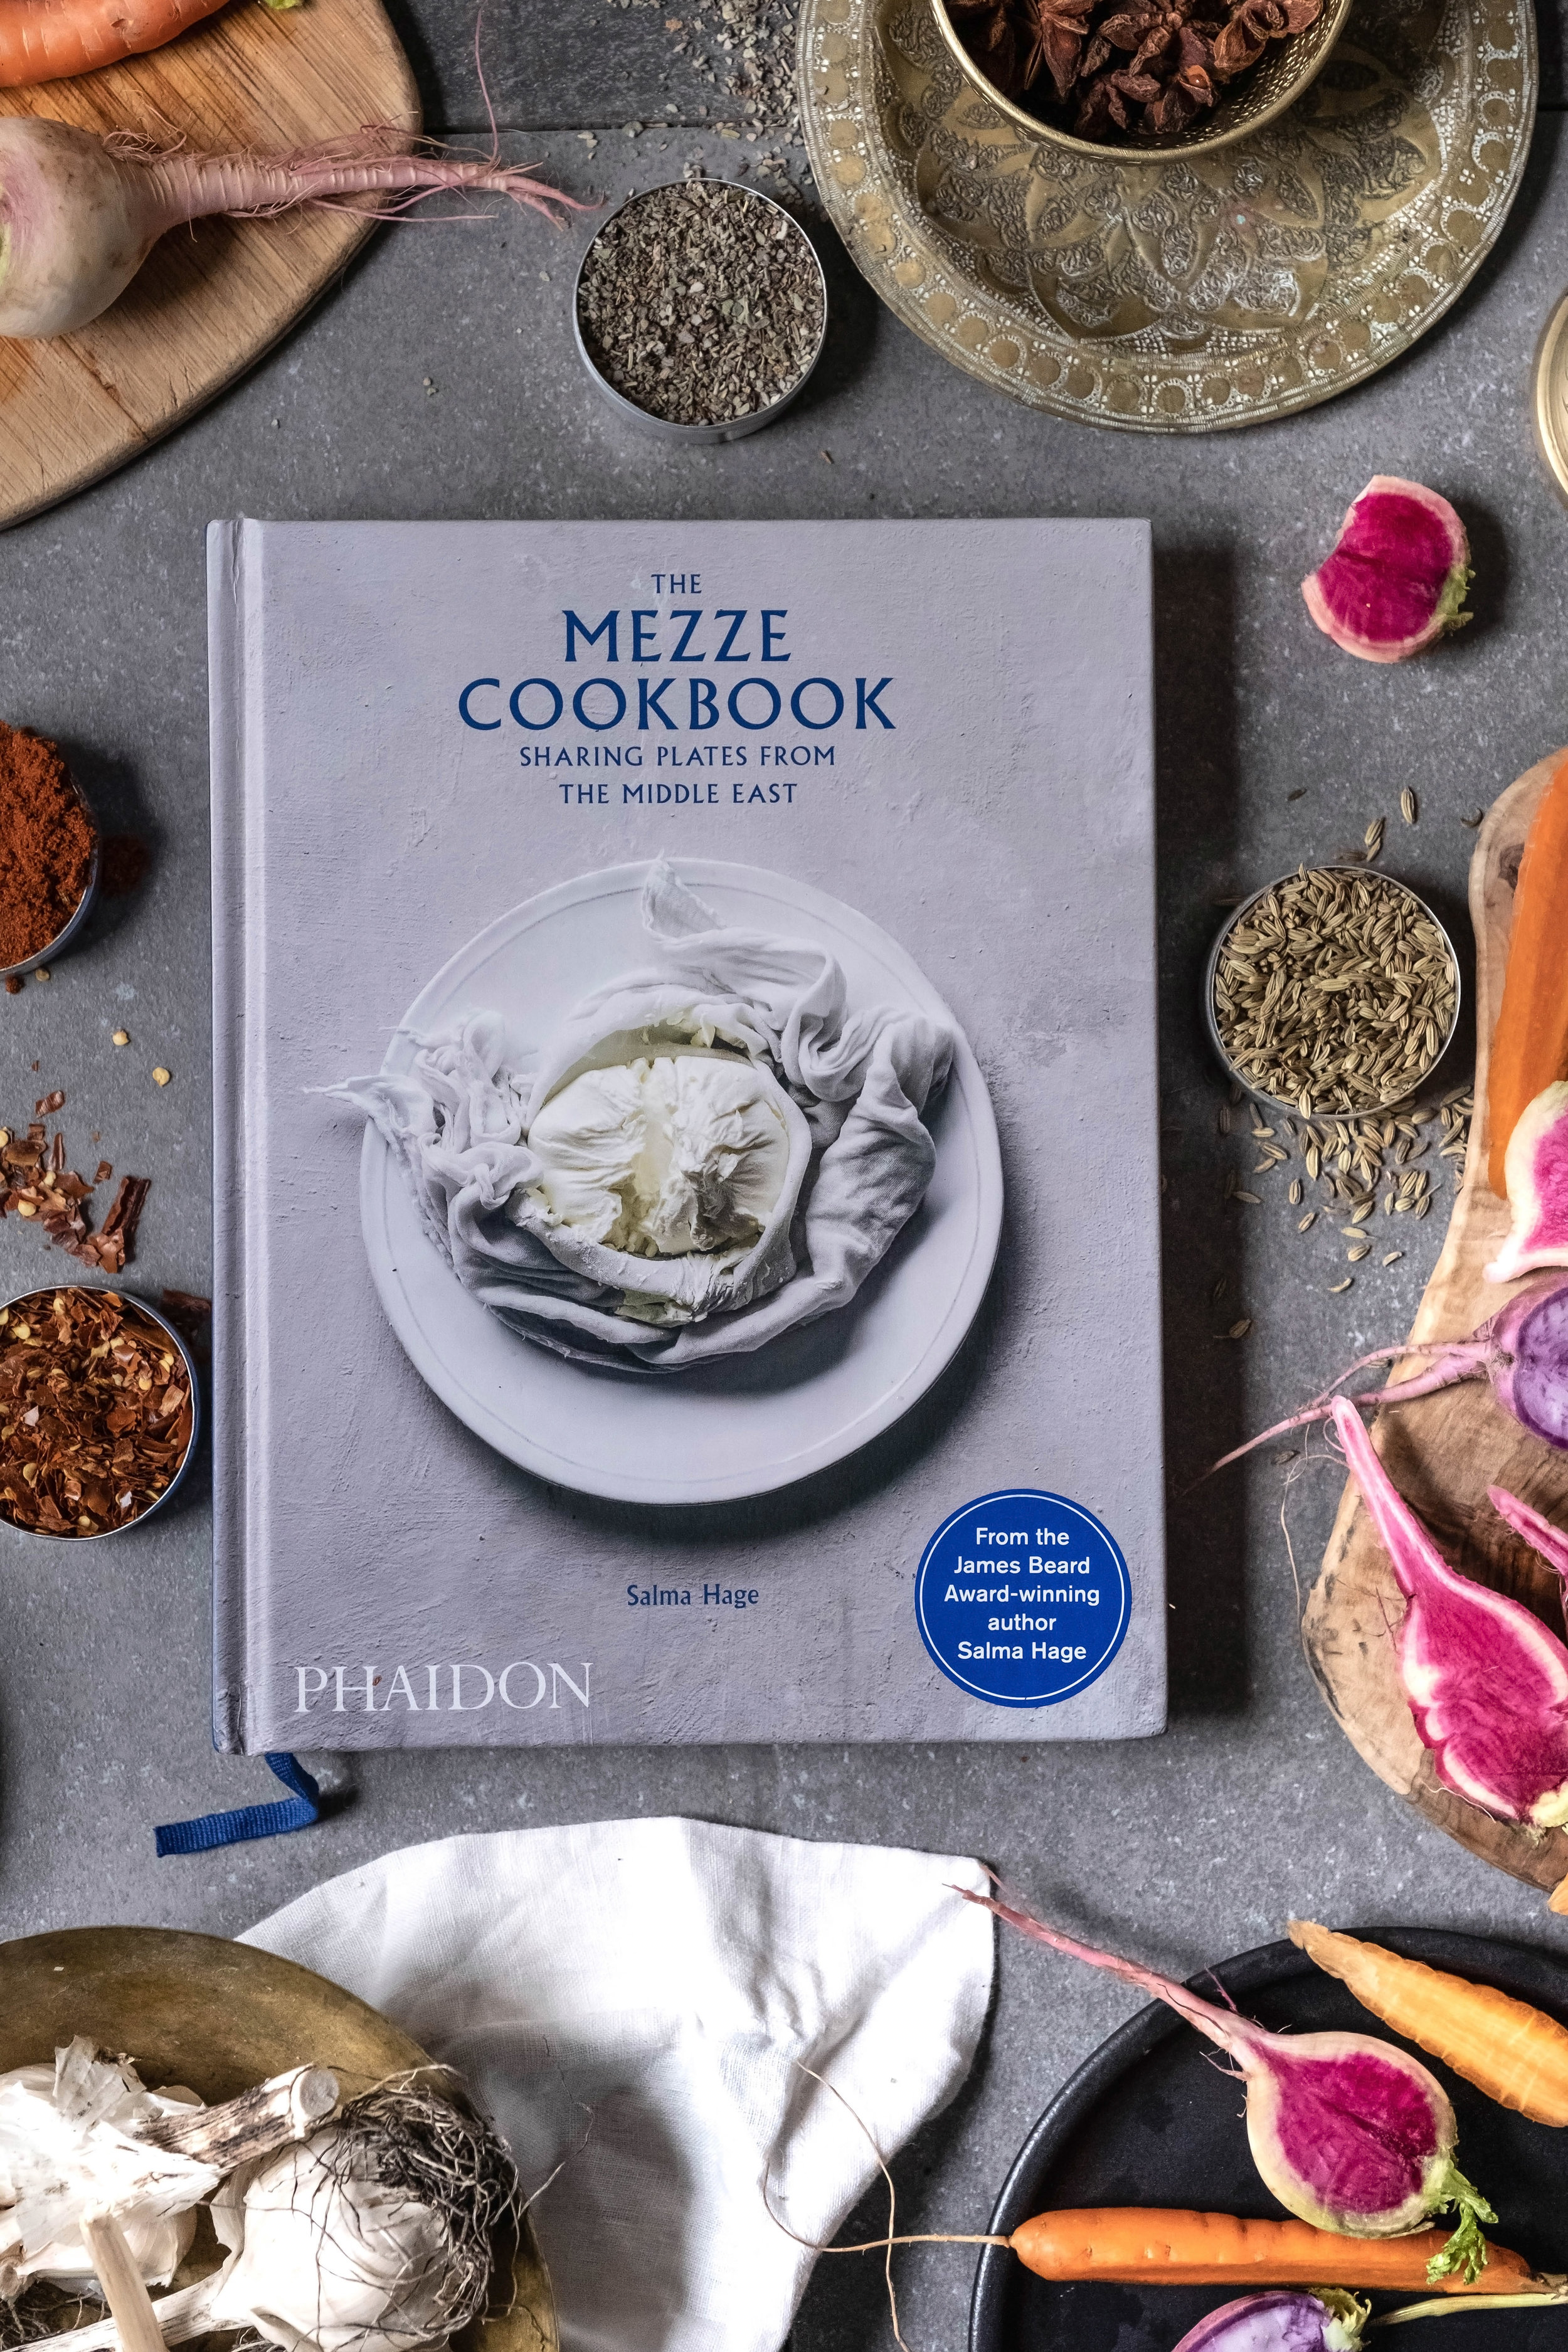 ROSE & IVY Journal Holiday Gifting Flavors of the Middle The Mezze Cookbook